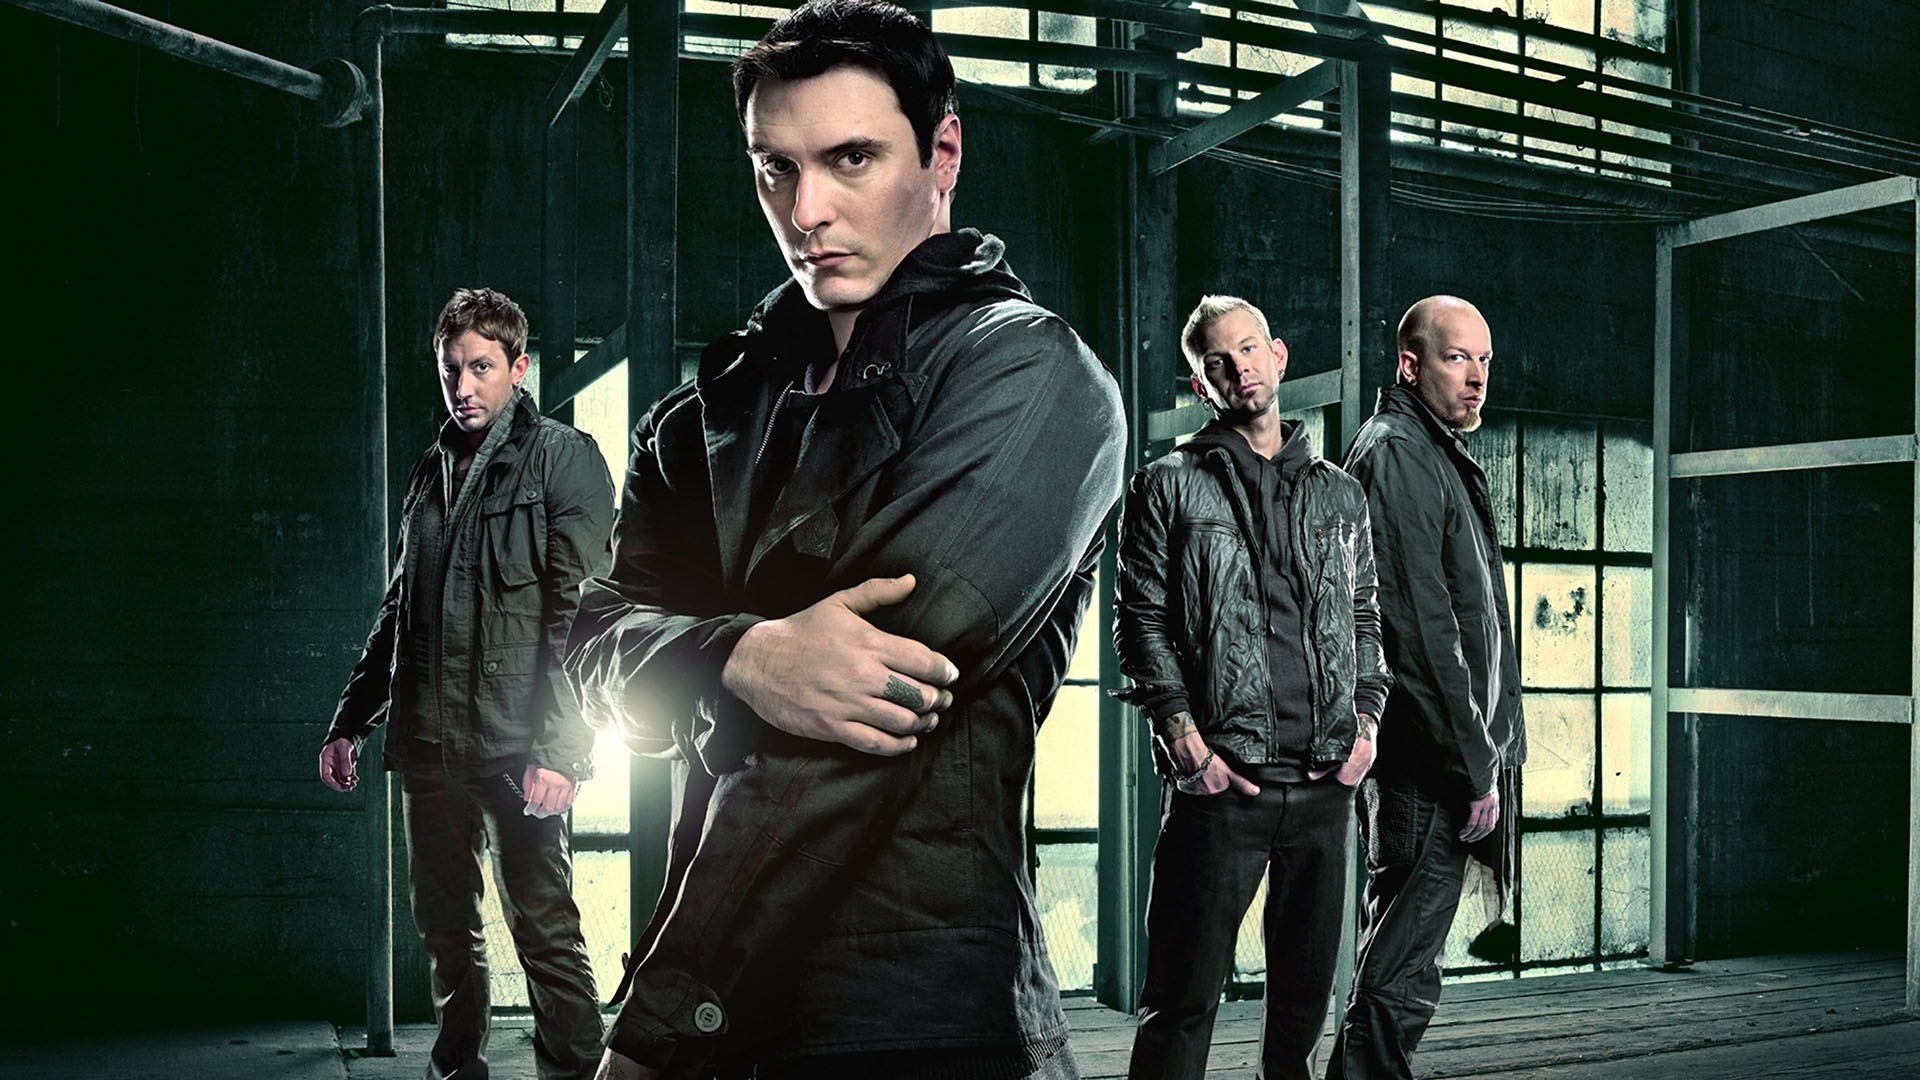 Breaking Benjamin HD Wallpaper Background Image 1920x1080 ID 1920x1080